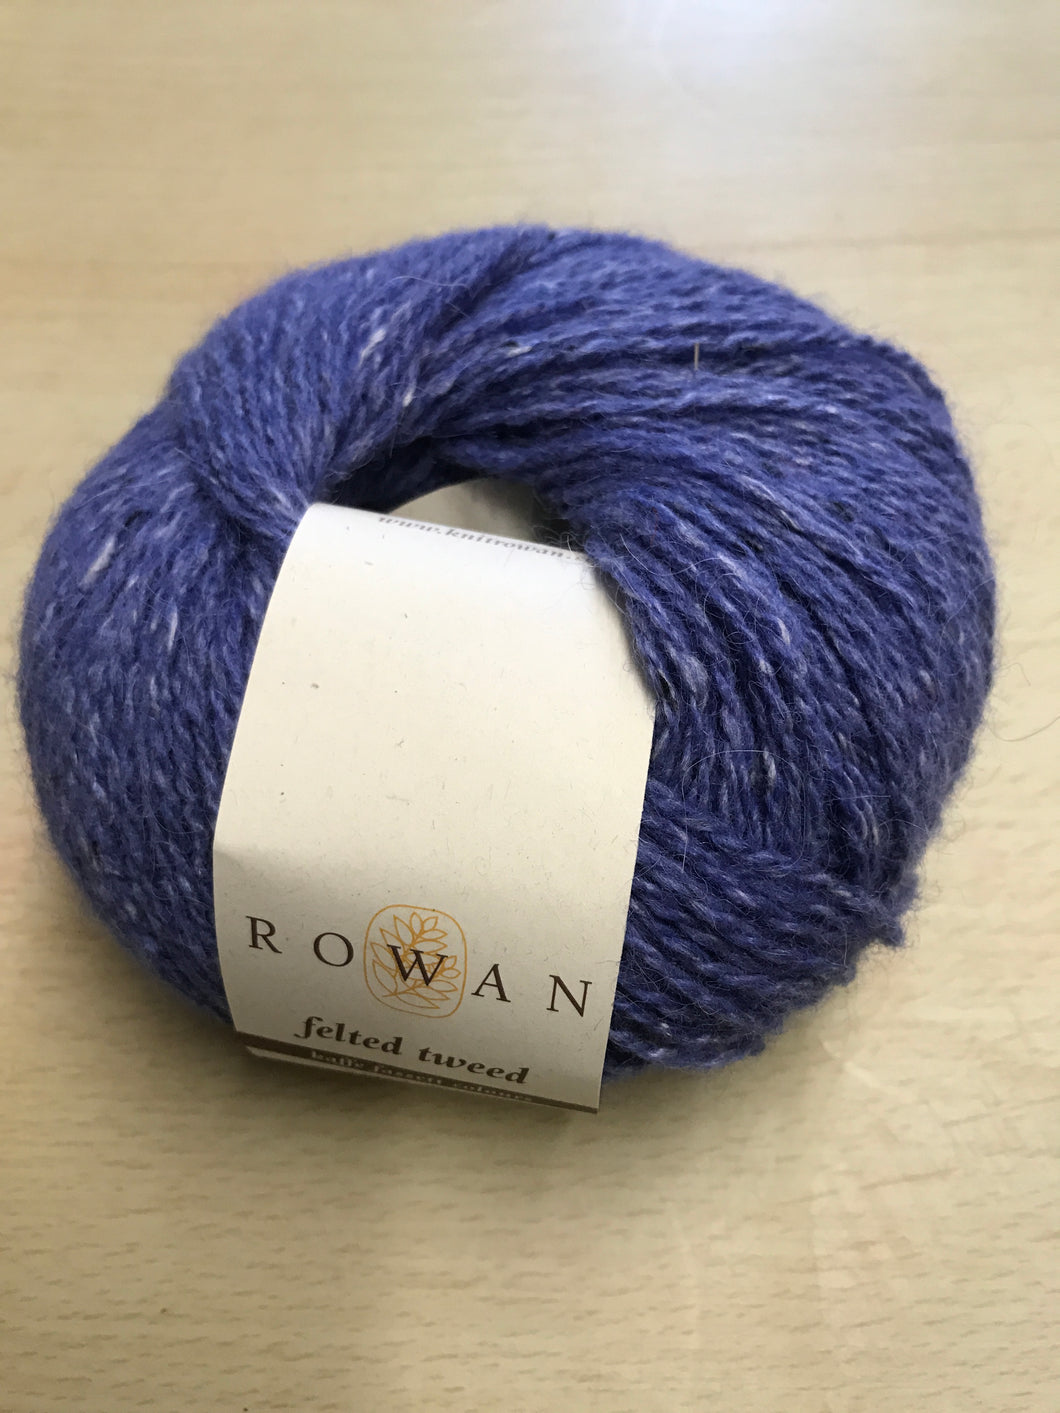 Rowan Felted tweed 201